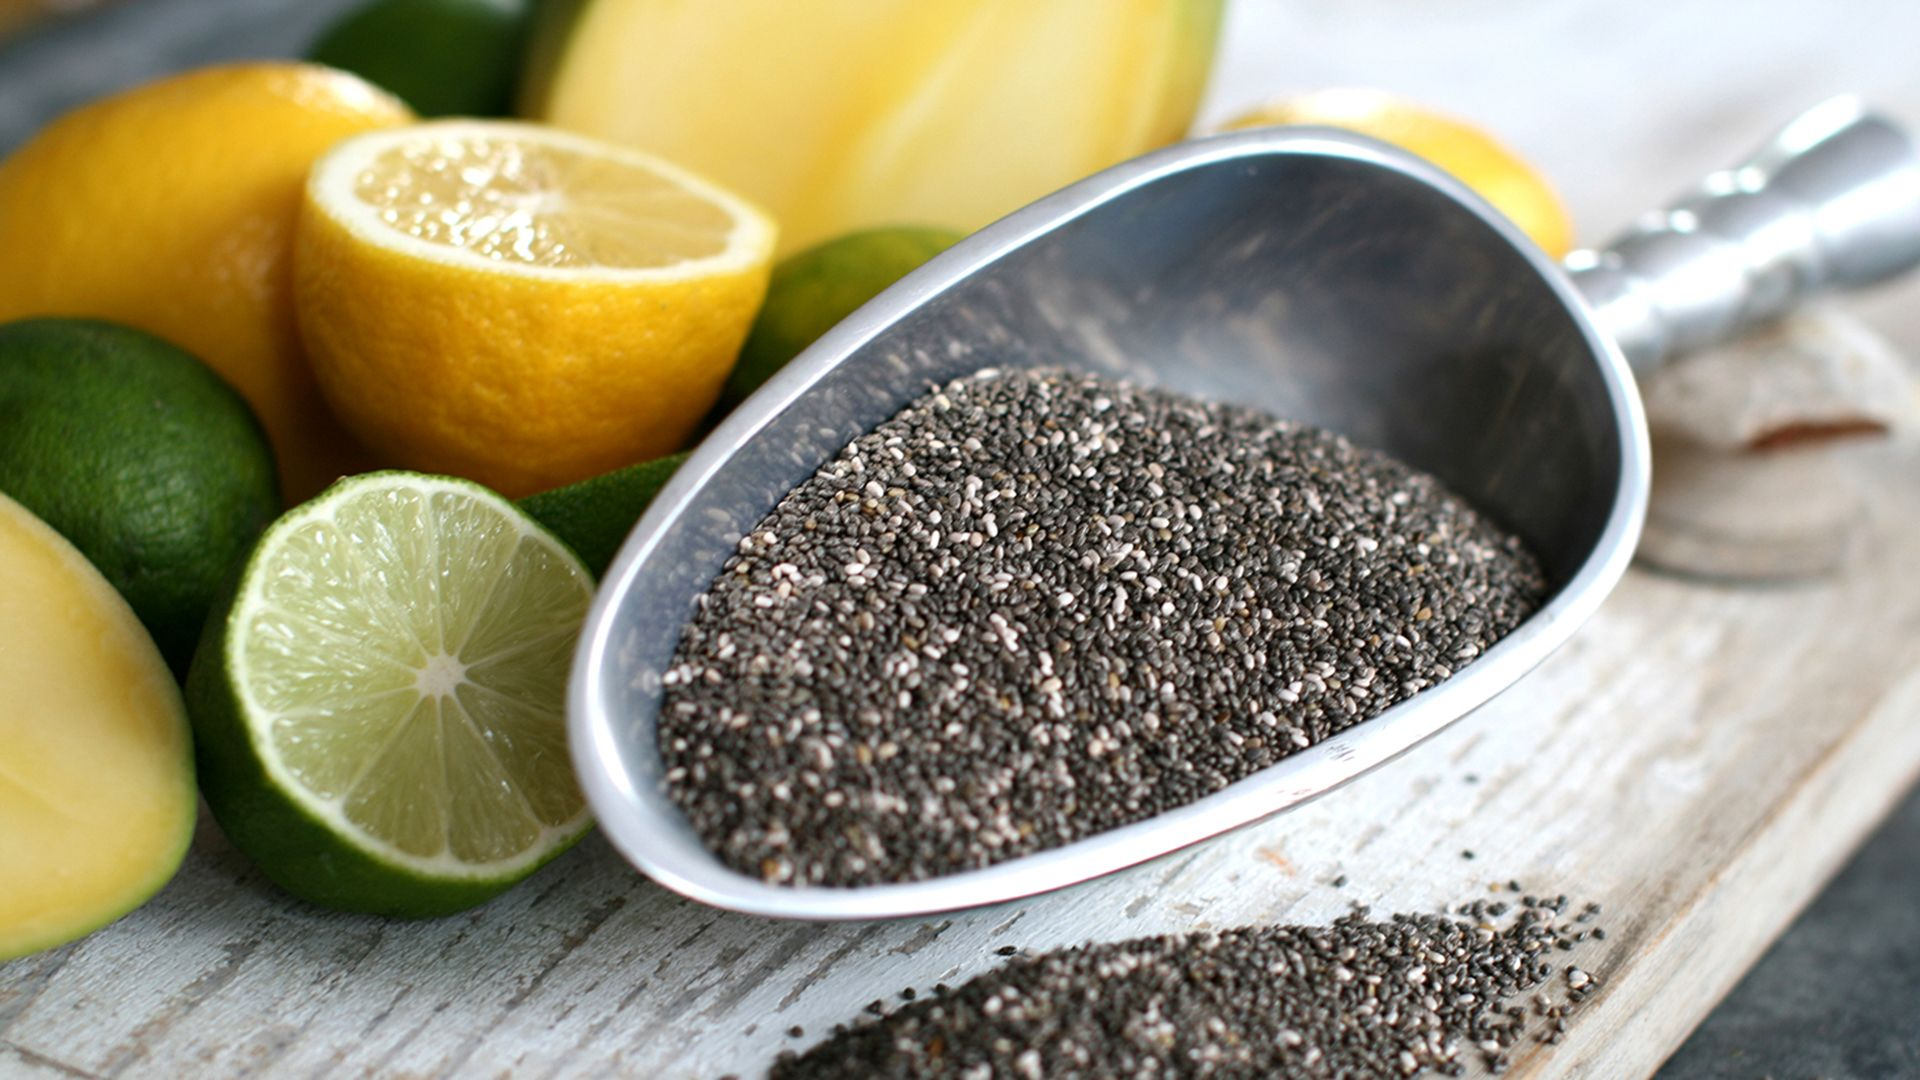 Want fab abs? Add chia seeds to your daily diet